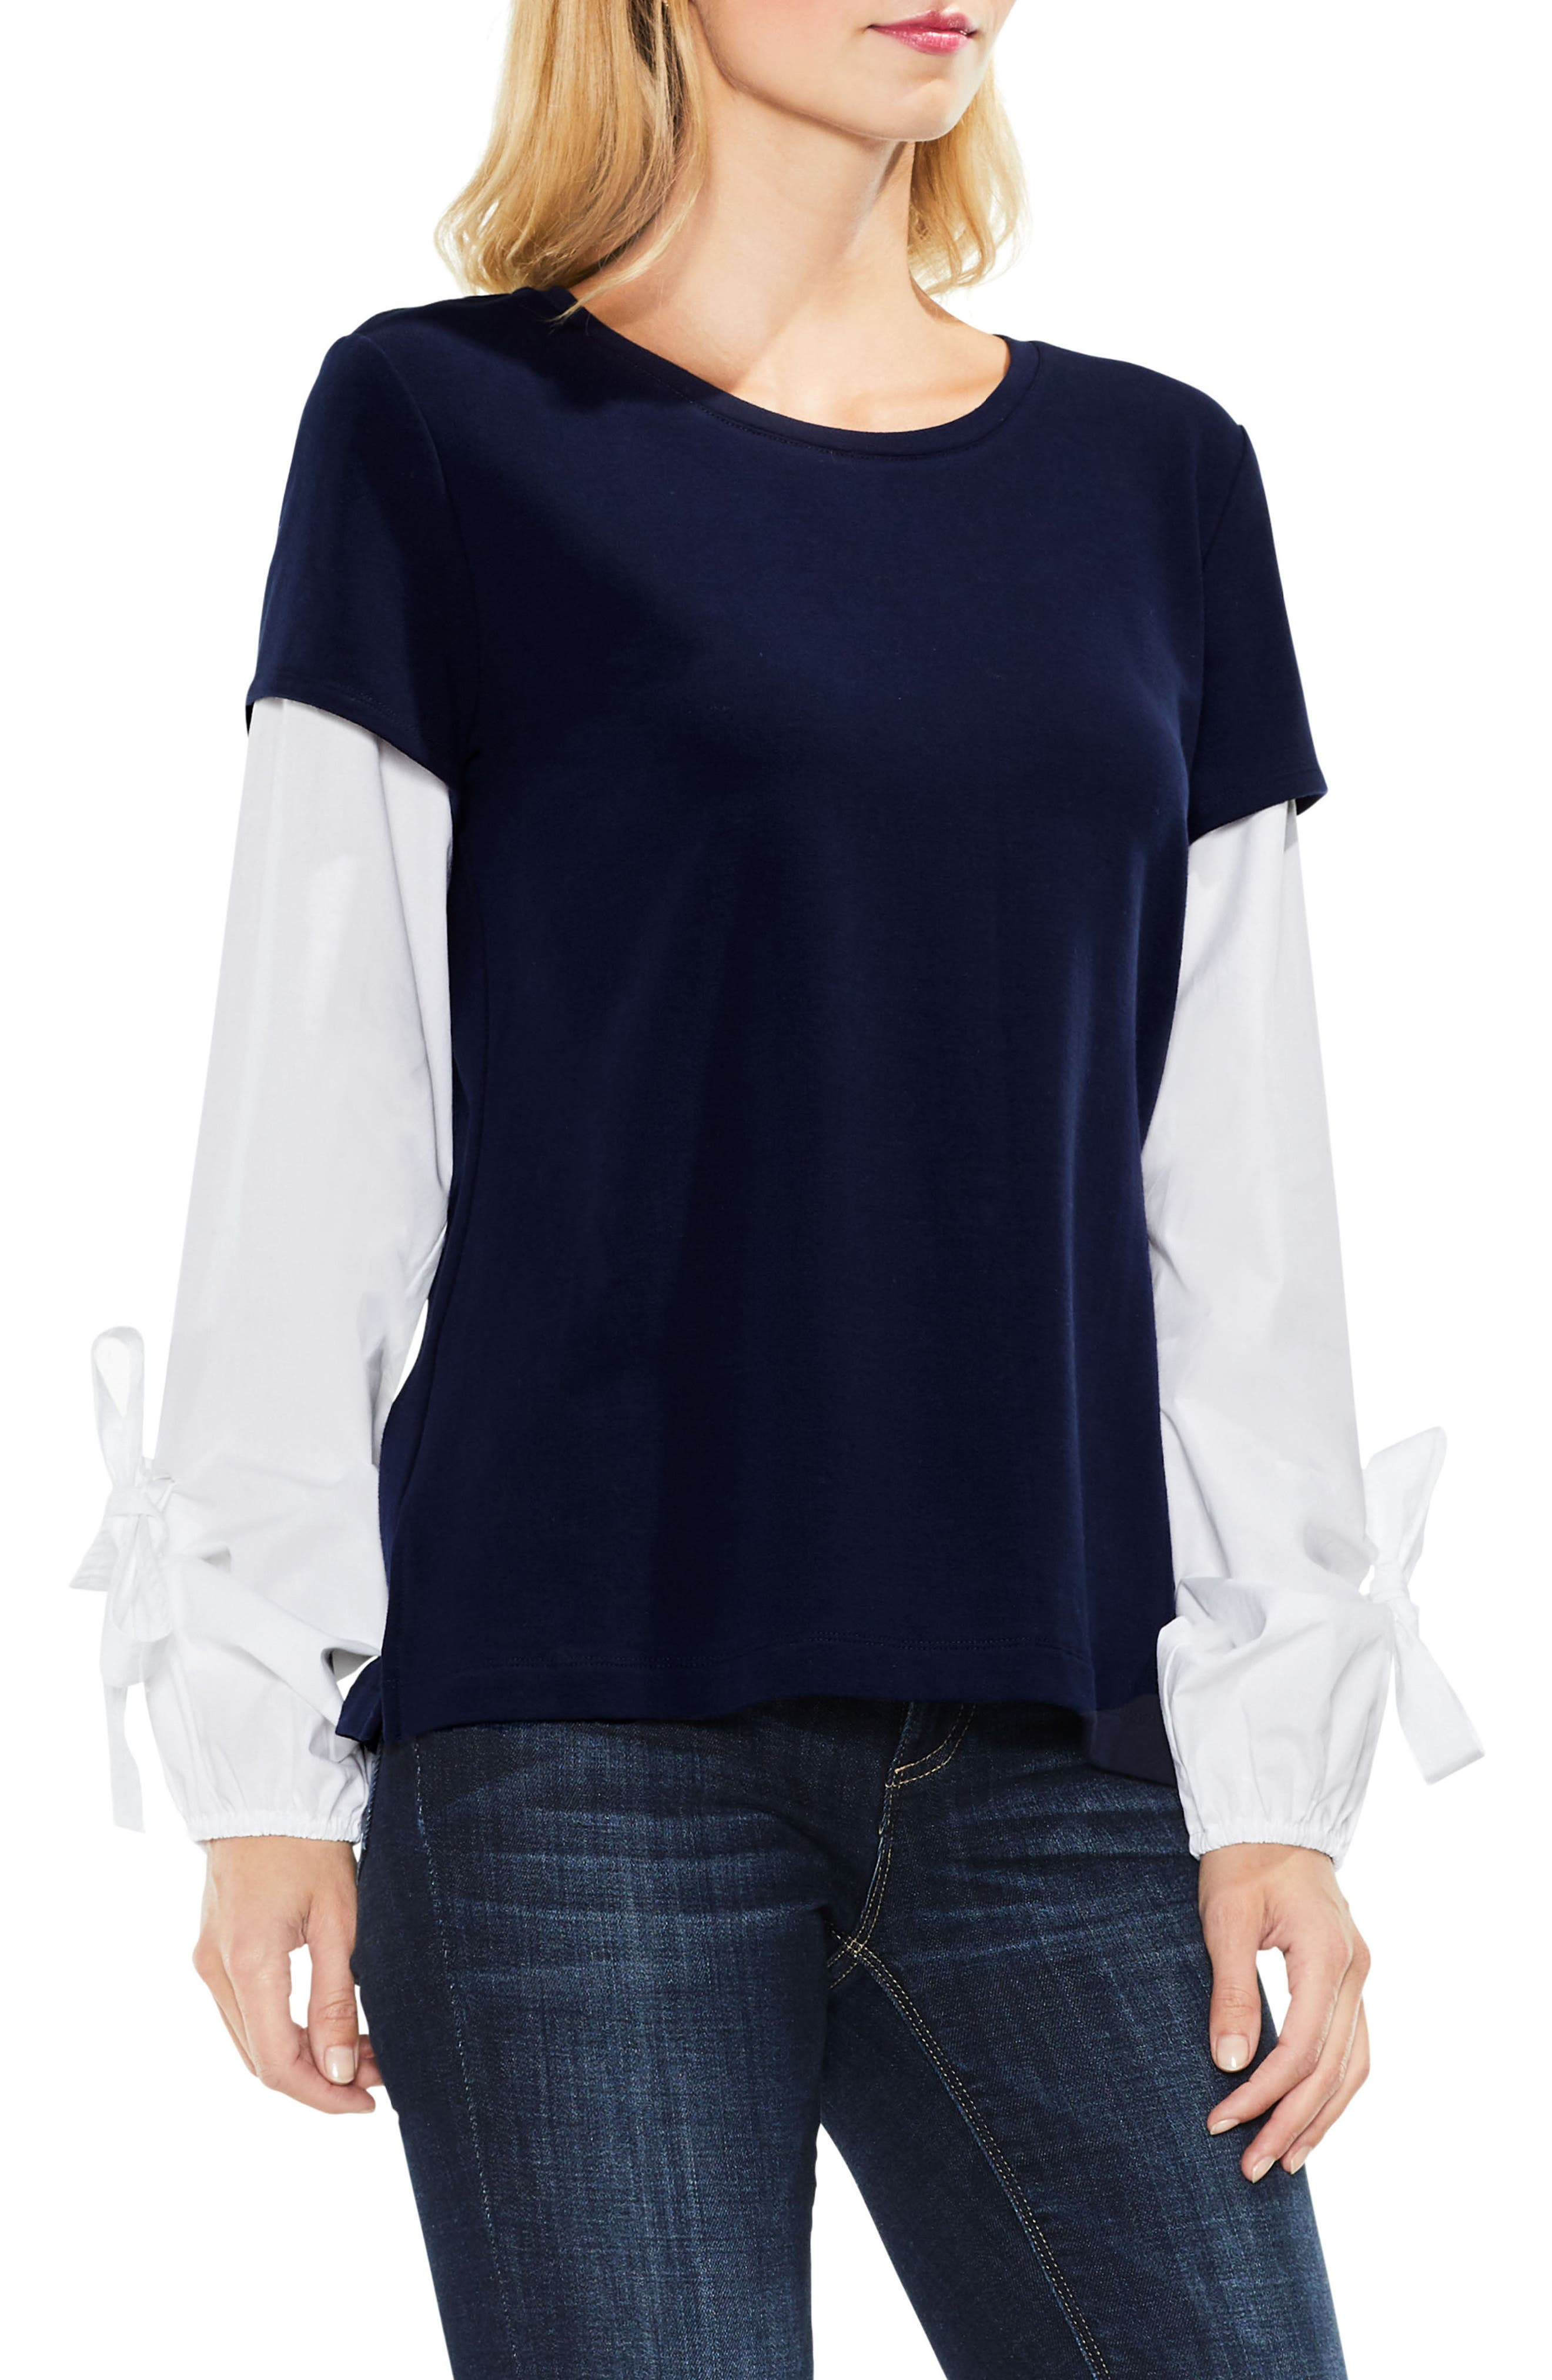 Alternate Image 1 Selected - Two by Vince Camuto Bubble Sleeve Mix Media Top (Regular & Petite)